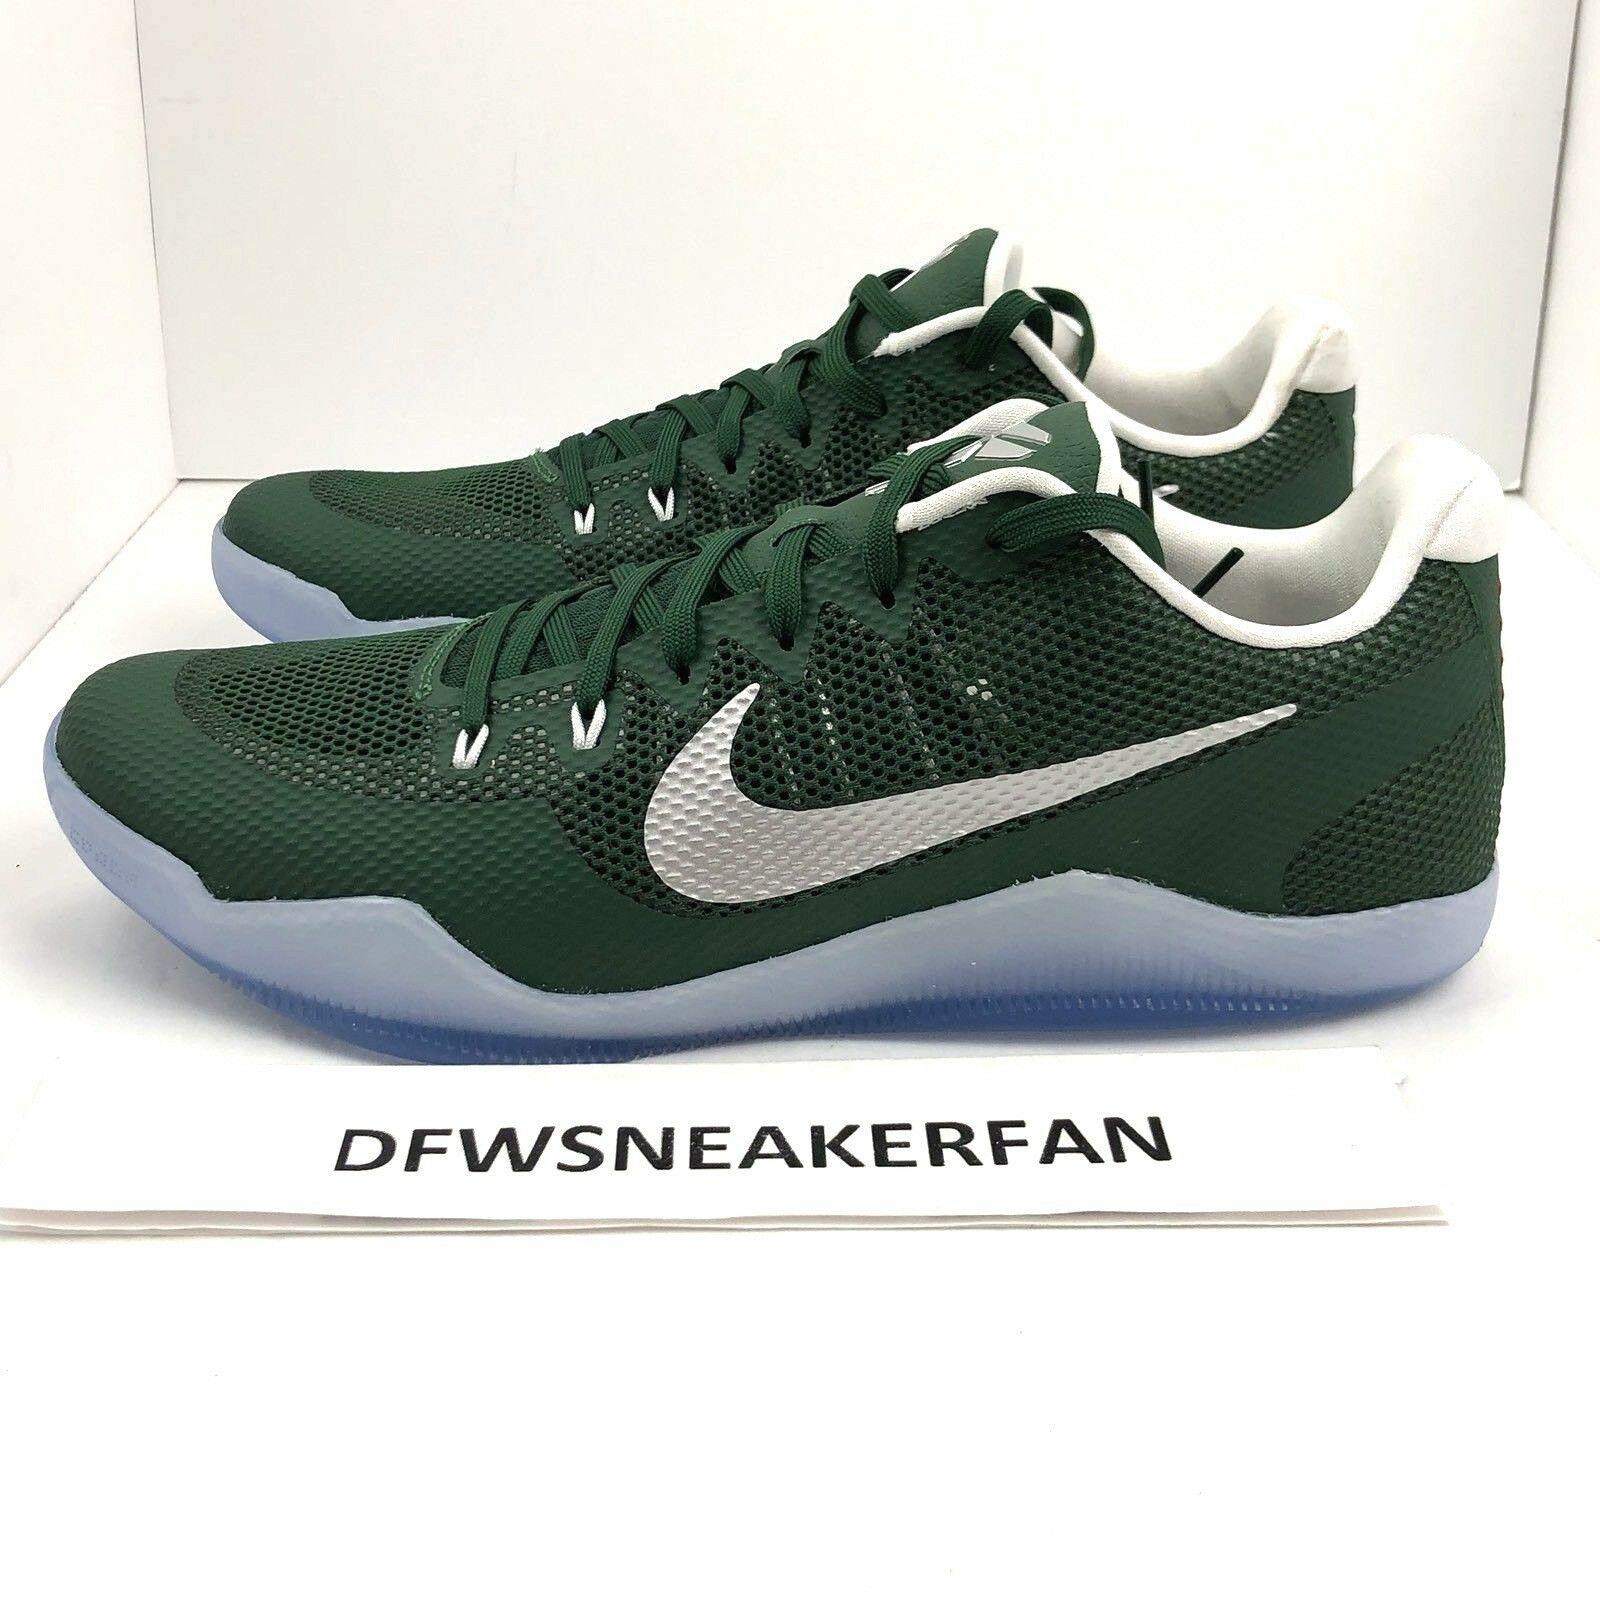 Nike Kobe XI 11 TB Promo Gorge Green Basketball shoes Size 14.5 Mens 856485-331